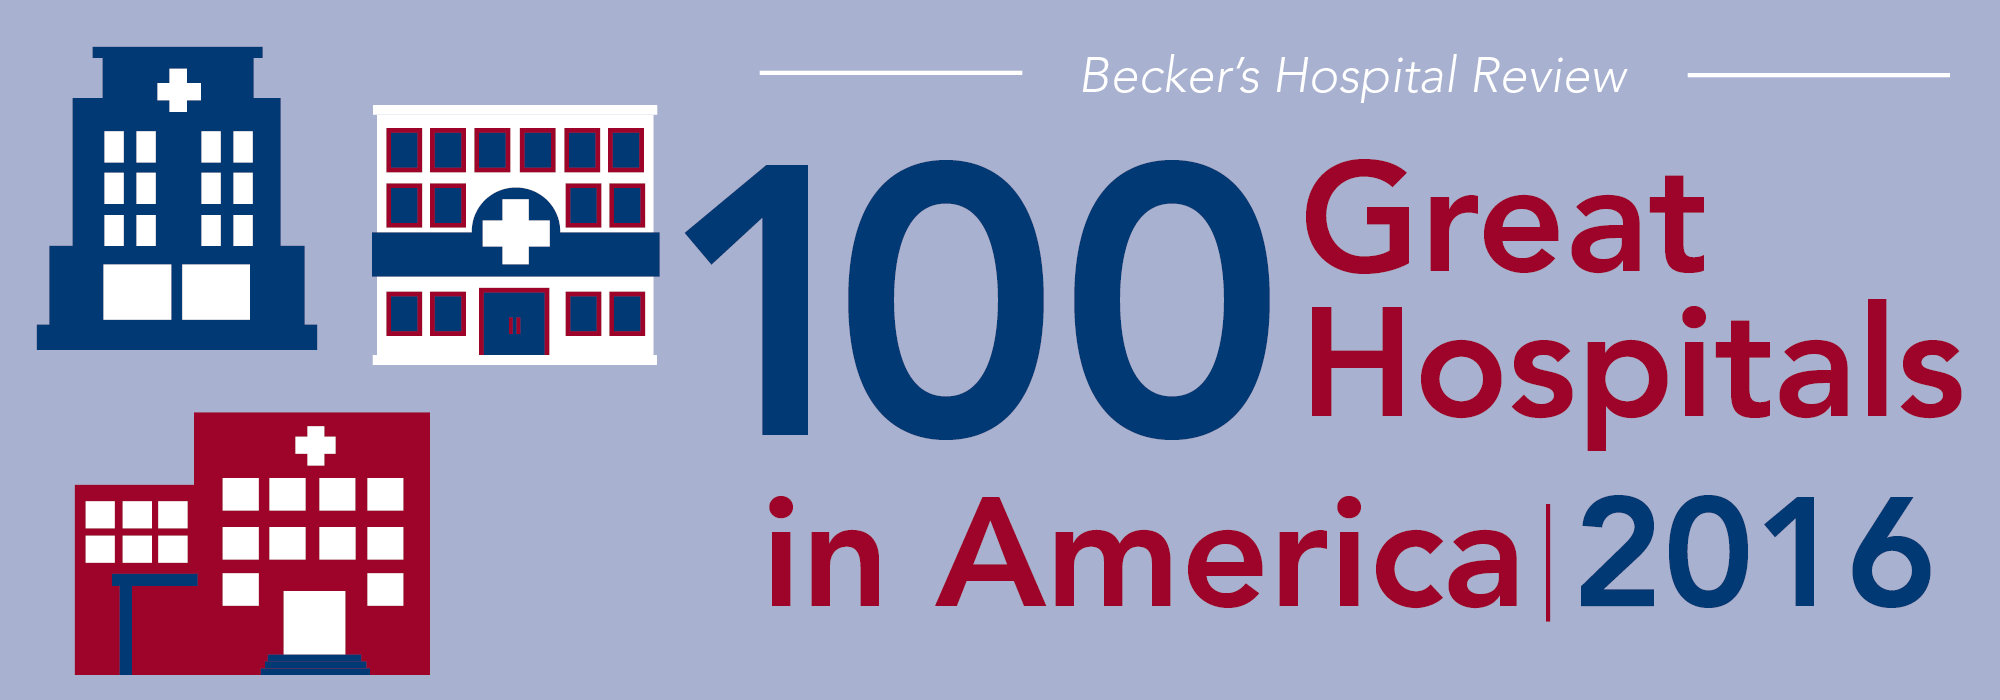 Tisch Hospital Ranking 100 Great Hospitals In America 2016